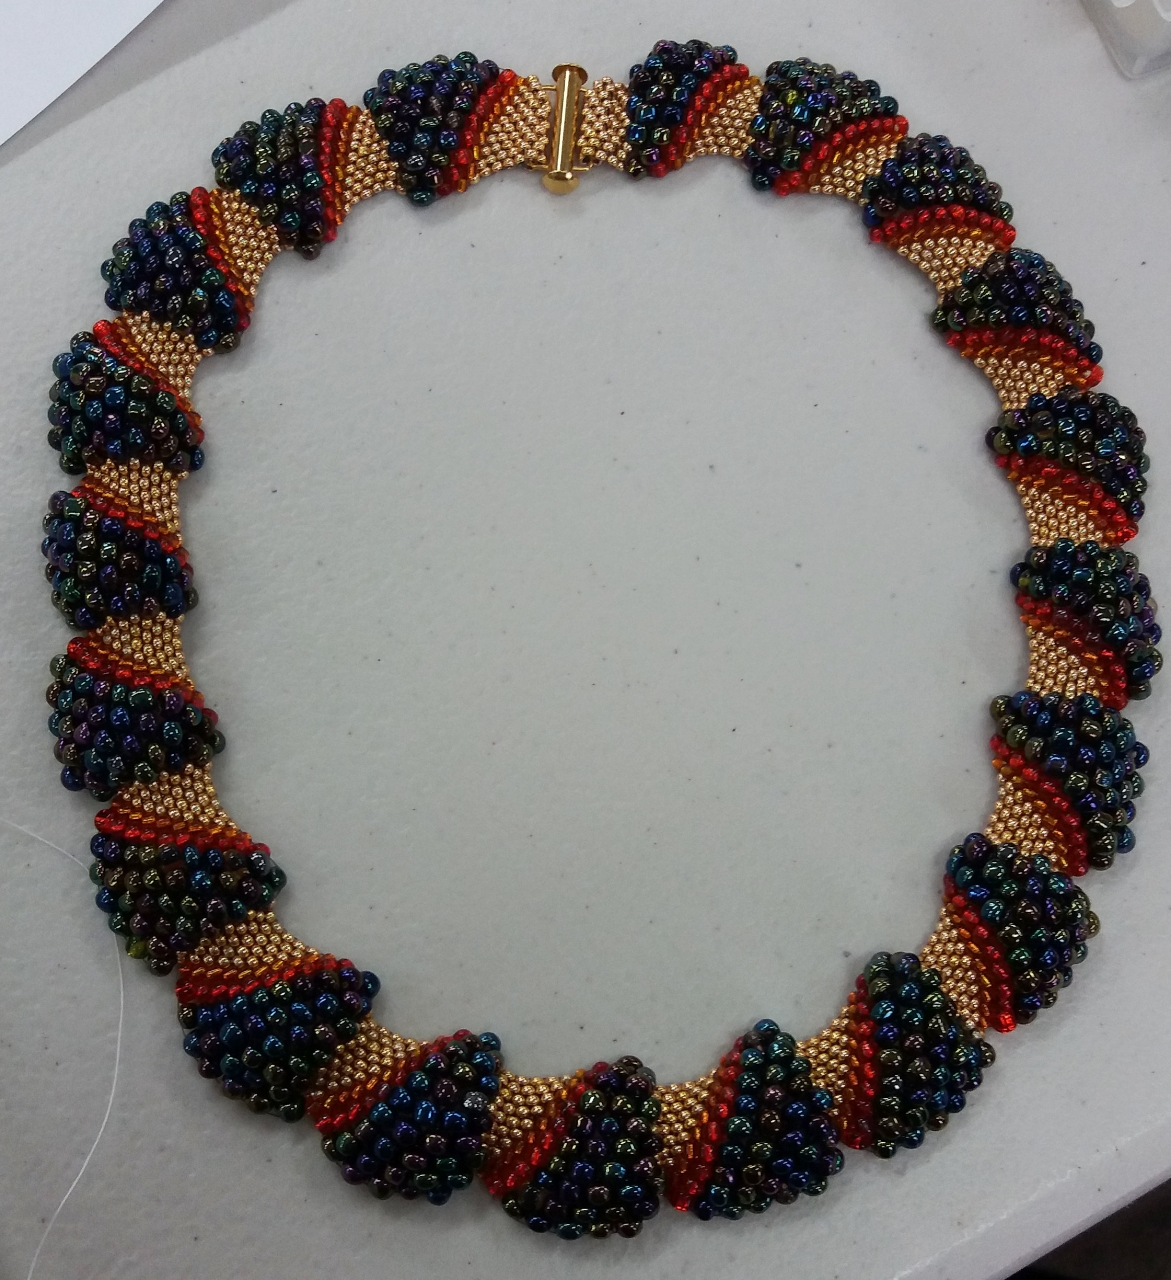 Mrs Mart's bead-work - Necklace